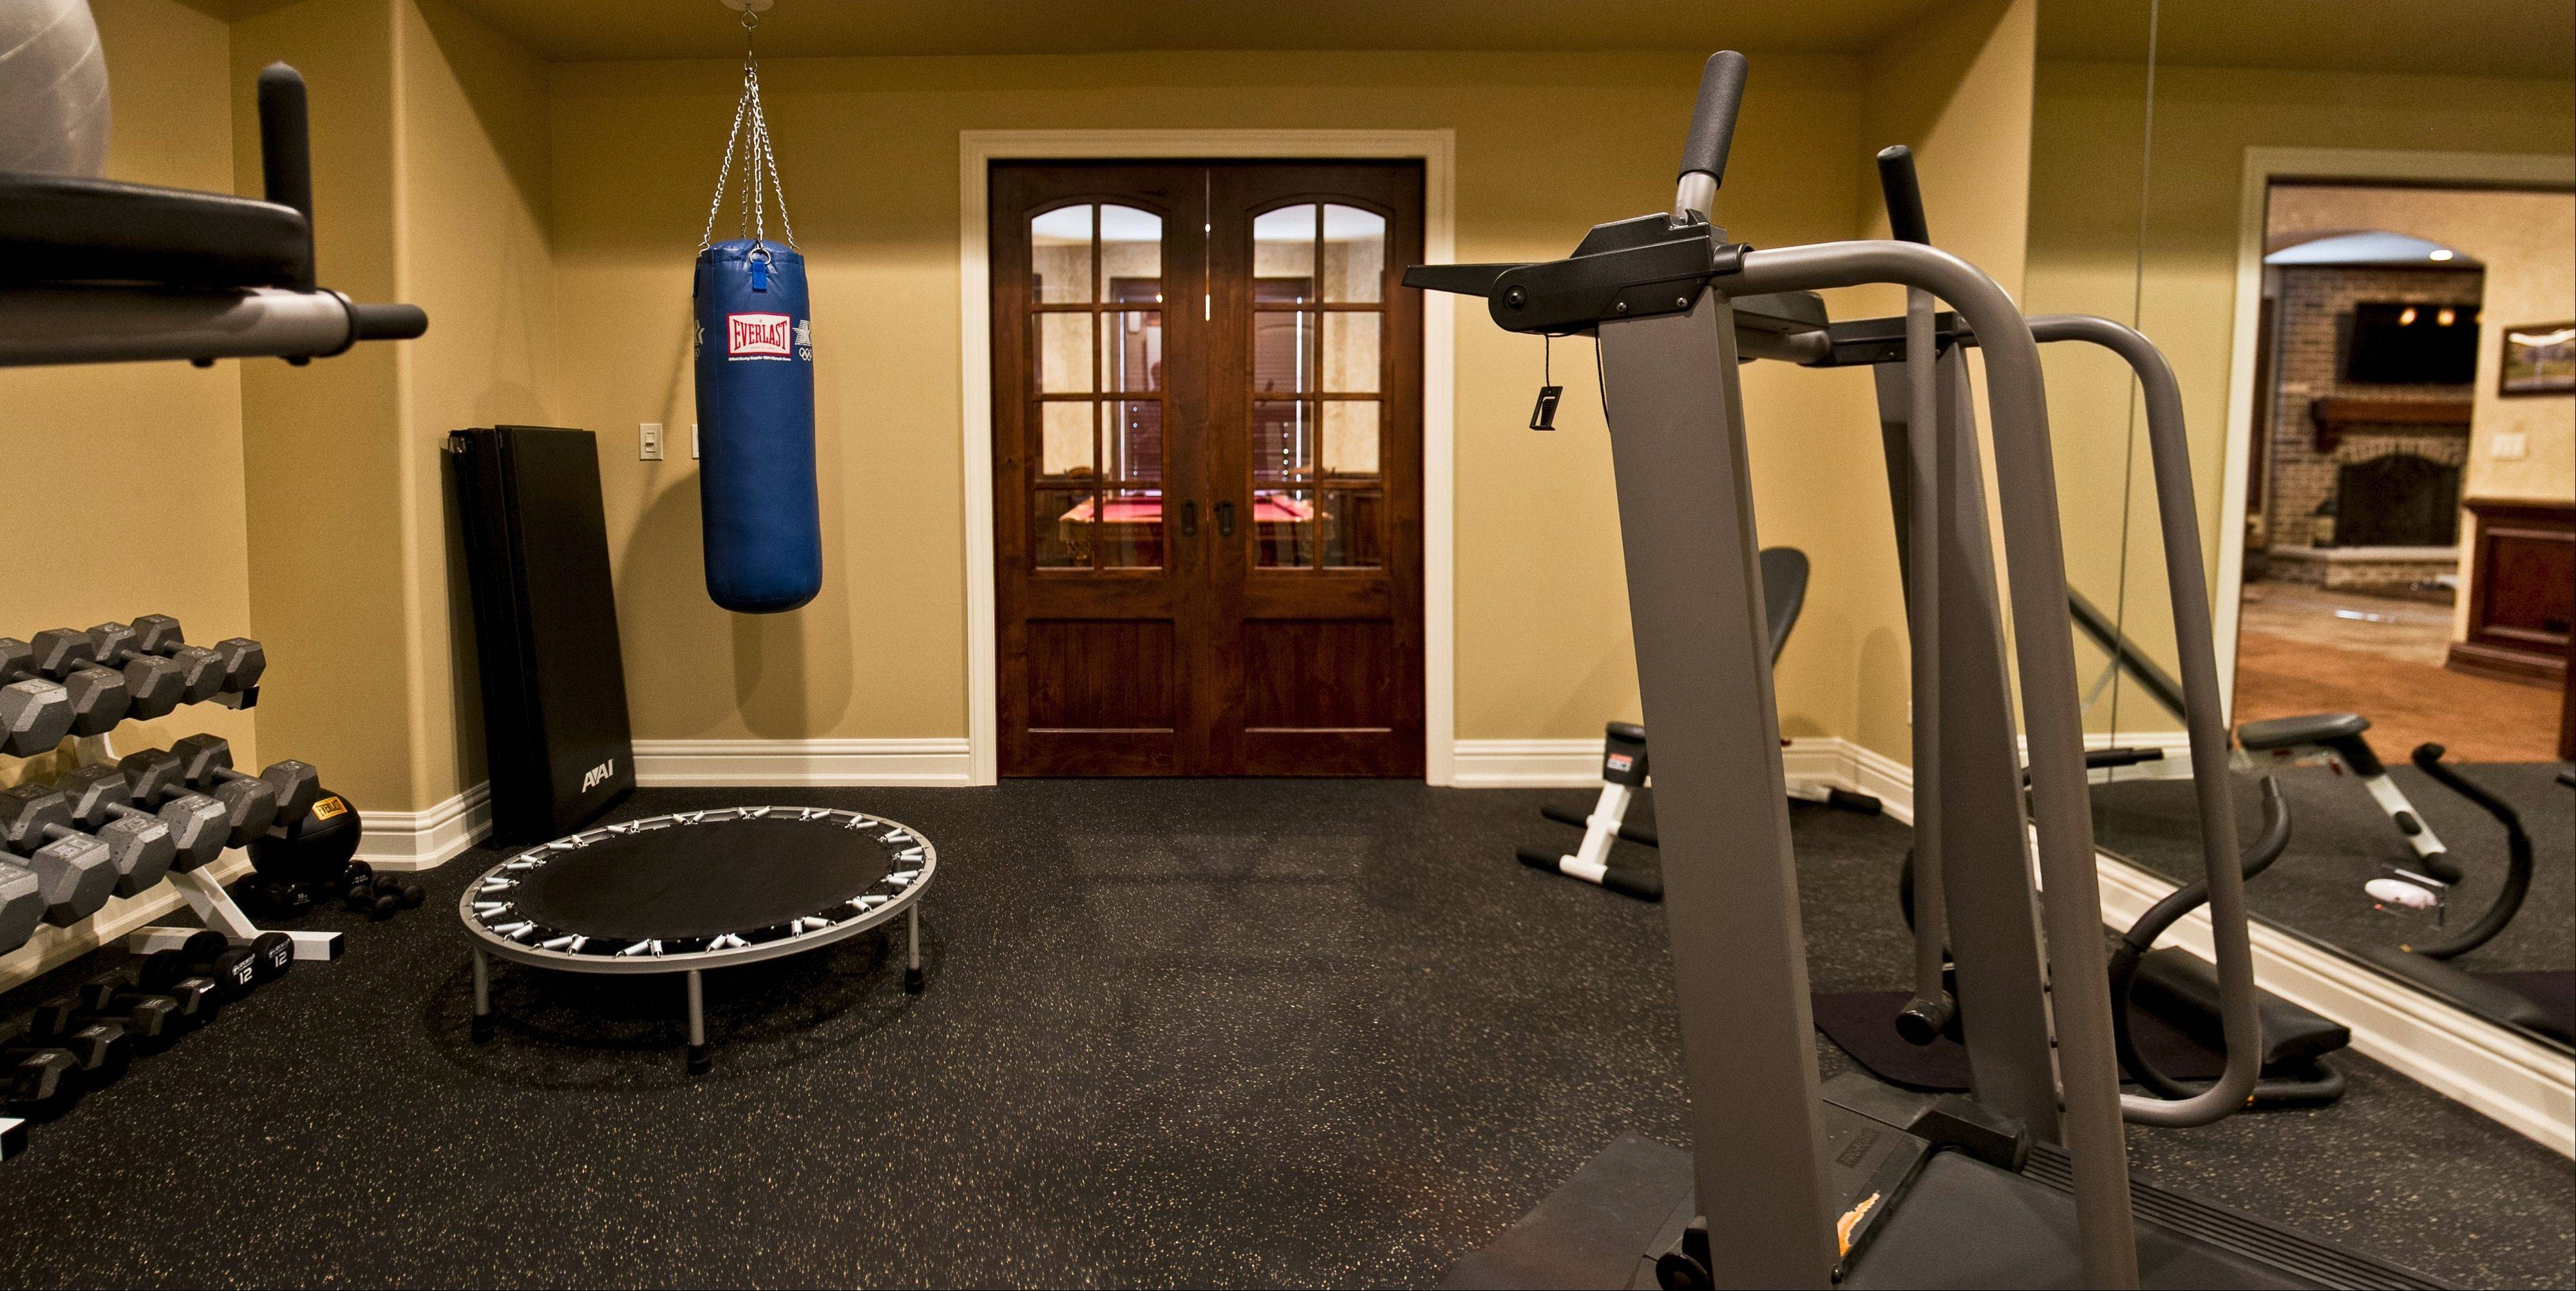 Specialty flooring, electrical wiring and added sound insulation are common for fitness rooms.